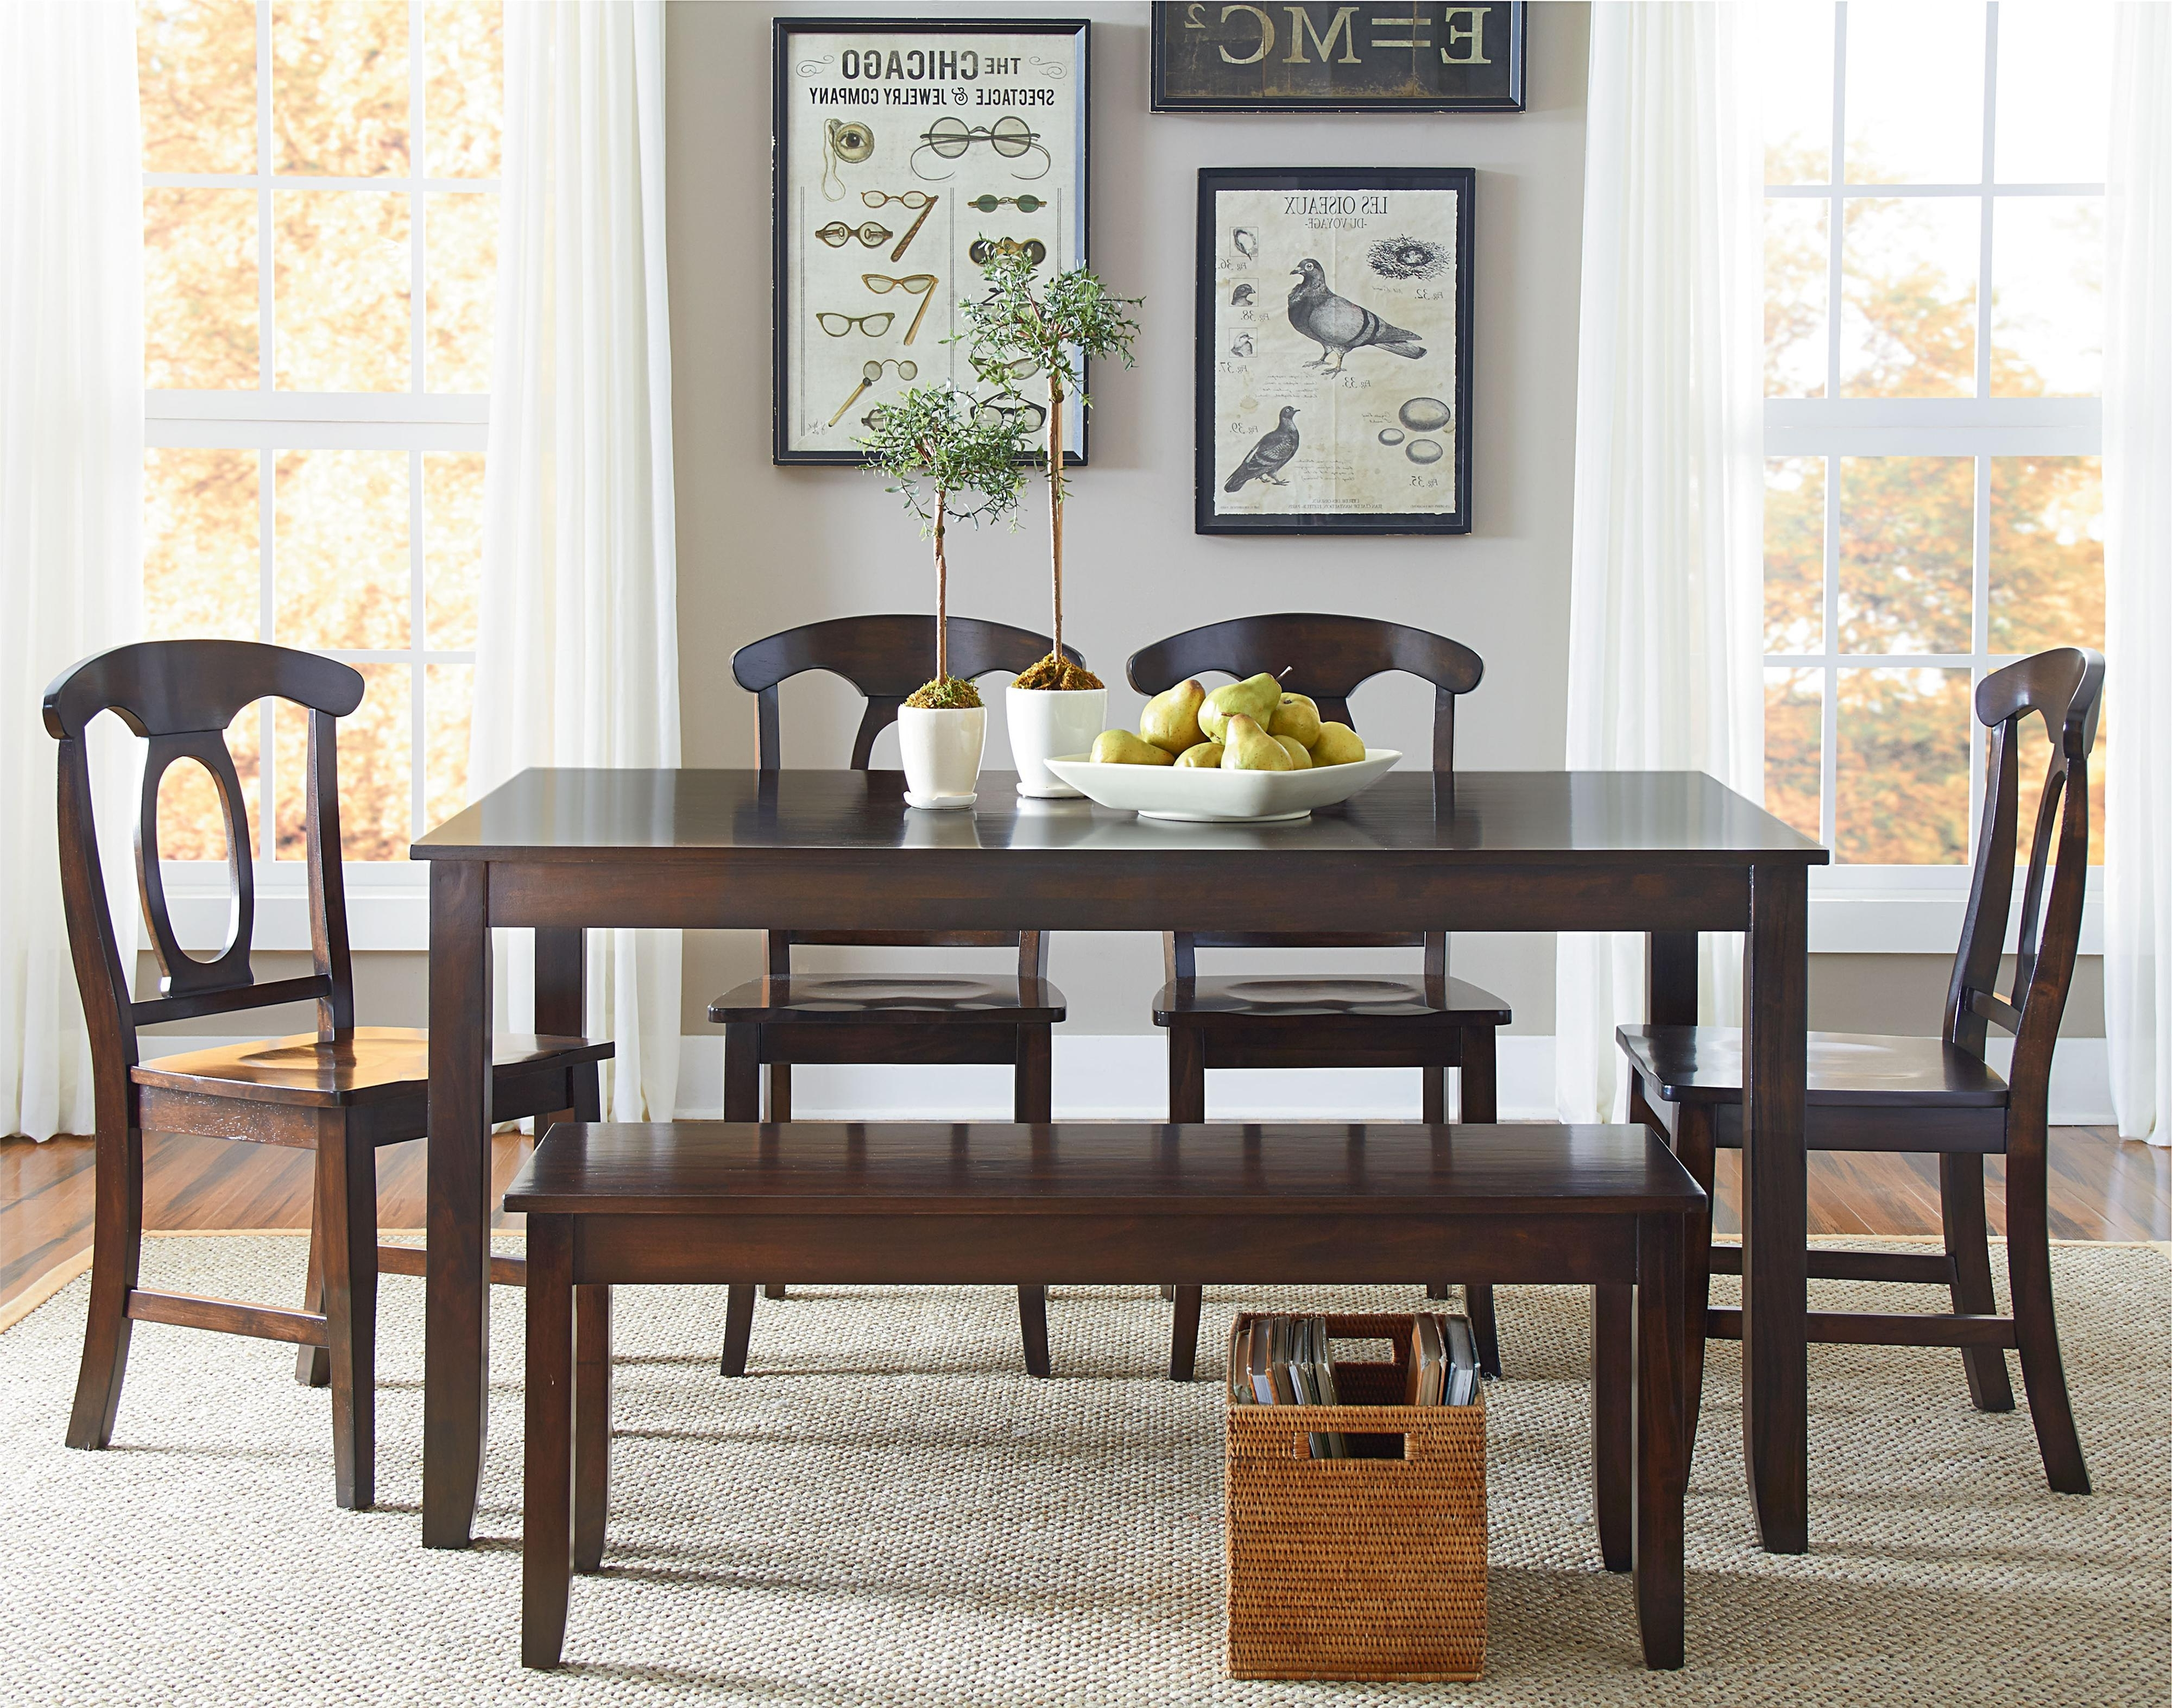 Newest Standard Furniture Larkin 6 Piece Dining Table Set With Open Oval With Regard To Cheap Dining Tables Sets (View 18 of 25)